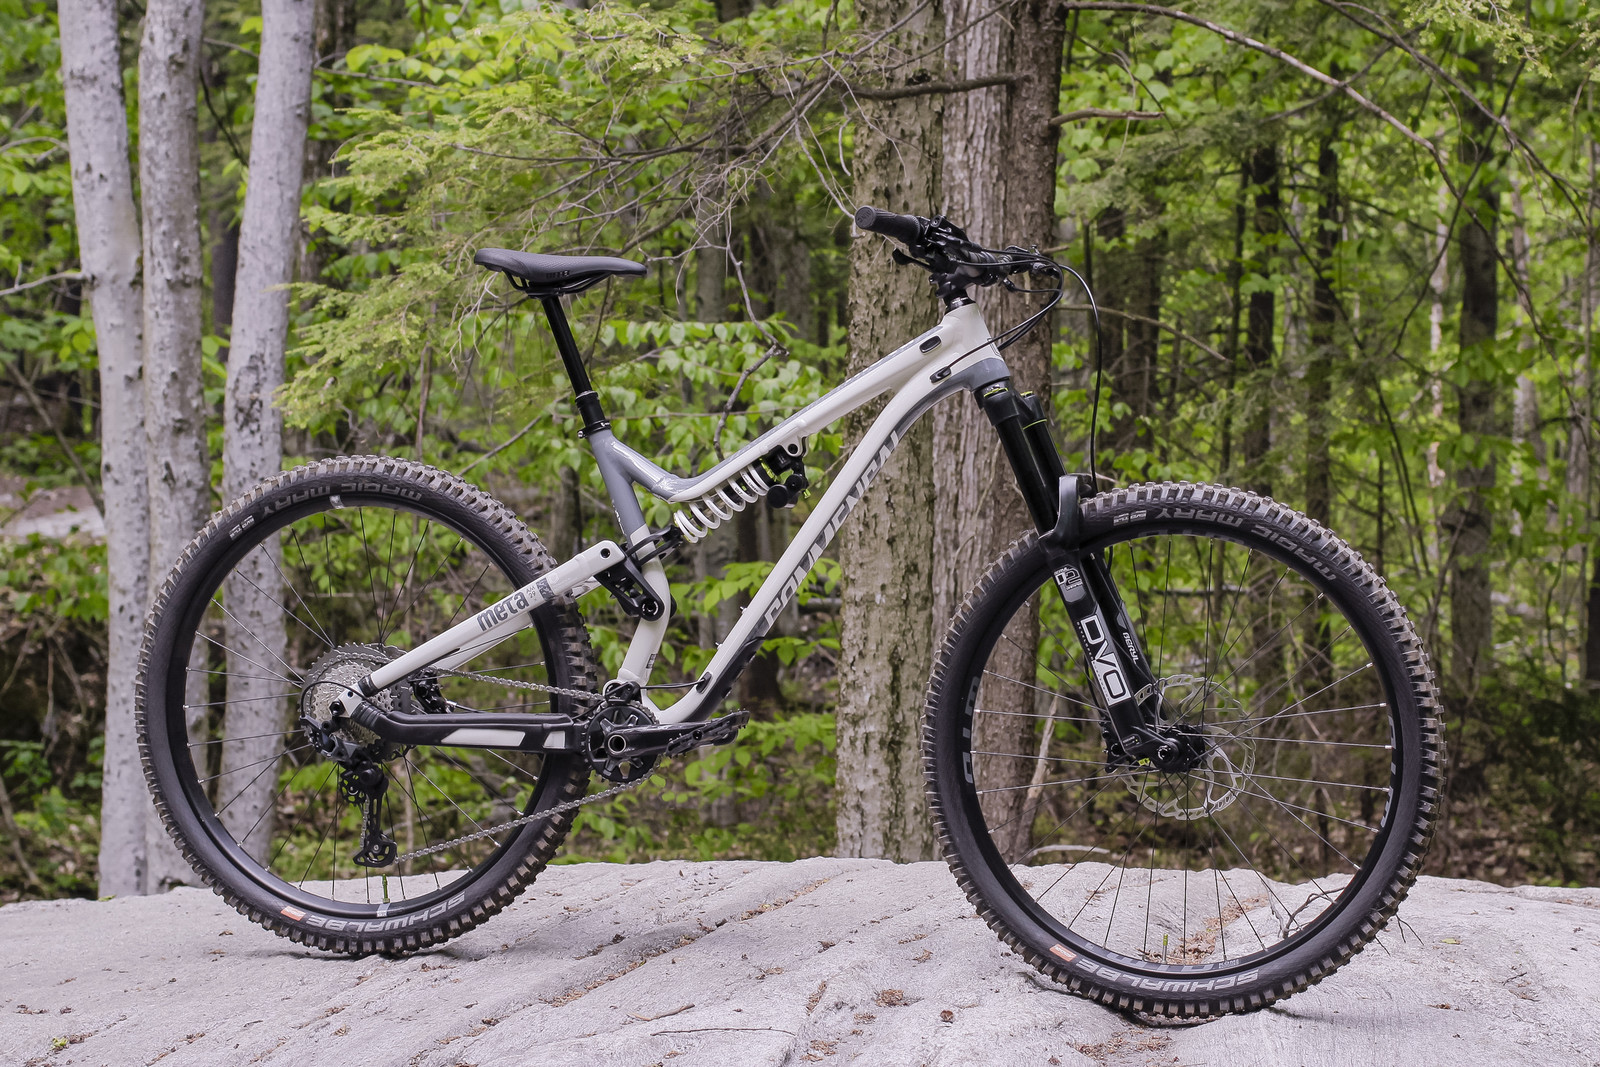 Spectacular enduro/all-mountain frame that's built to last